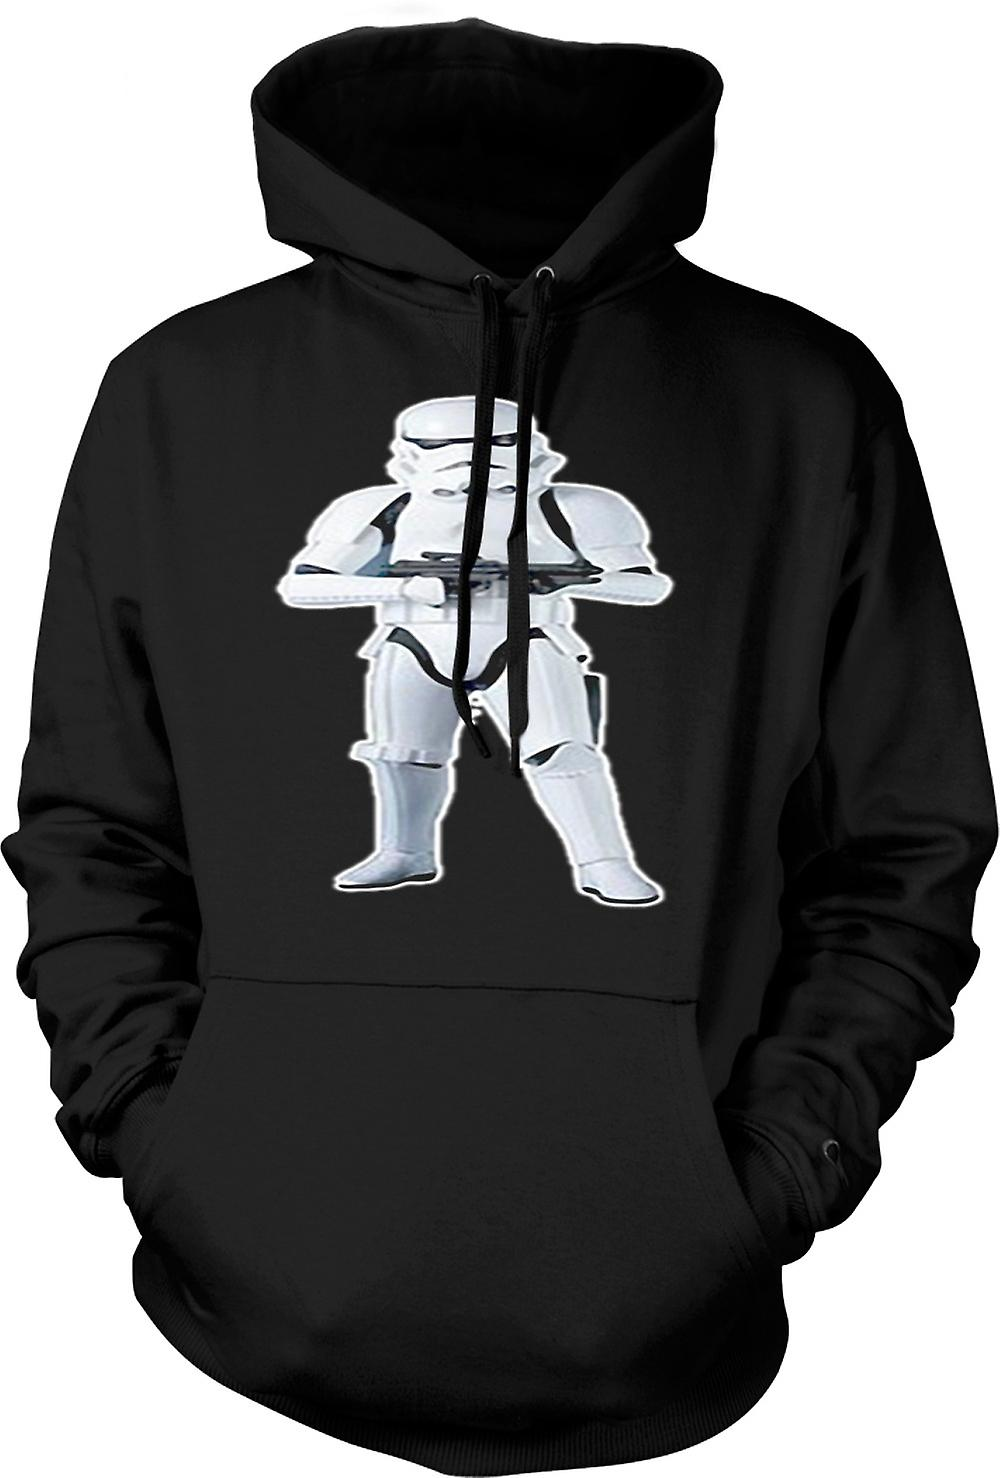 Hoodie Kids - Star Wars - Storm Trooper - Vidéo